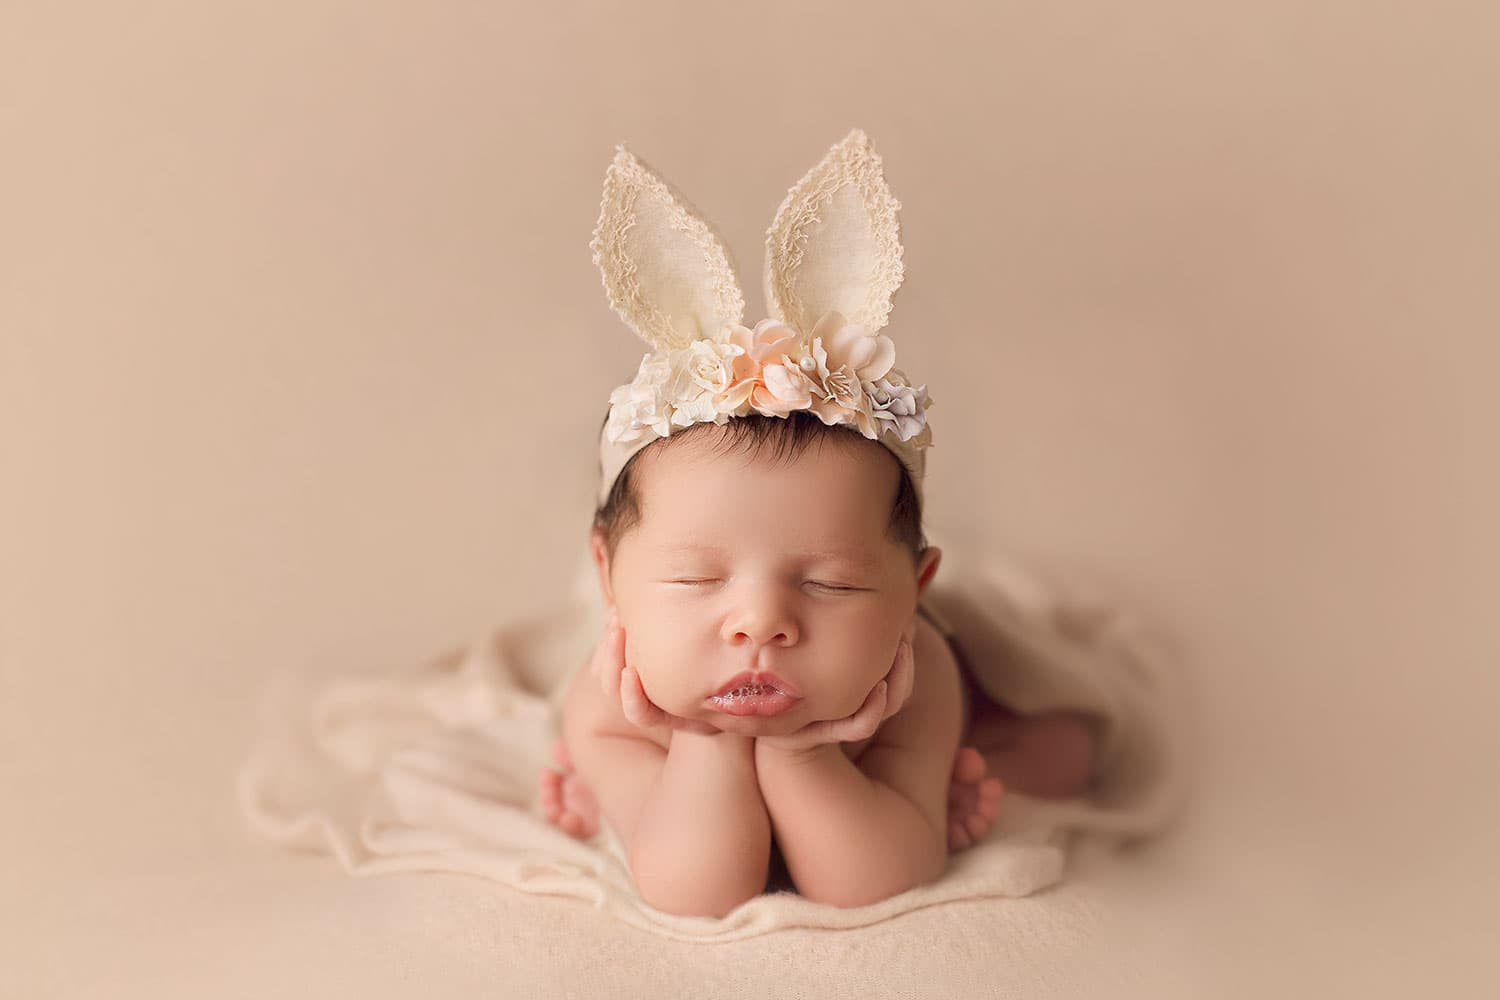 Newborn baby in bunny ear headband by Annie Whitaker Photography